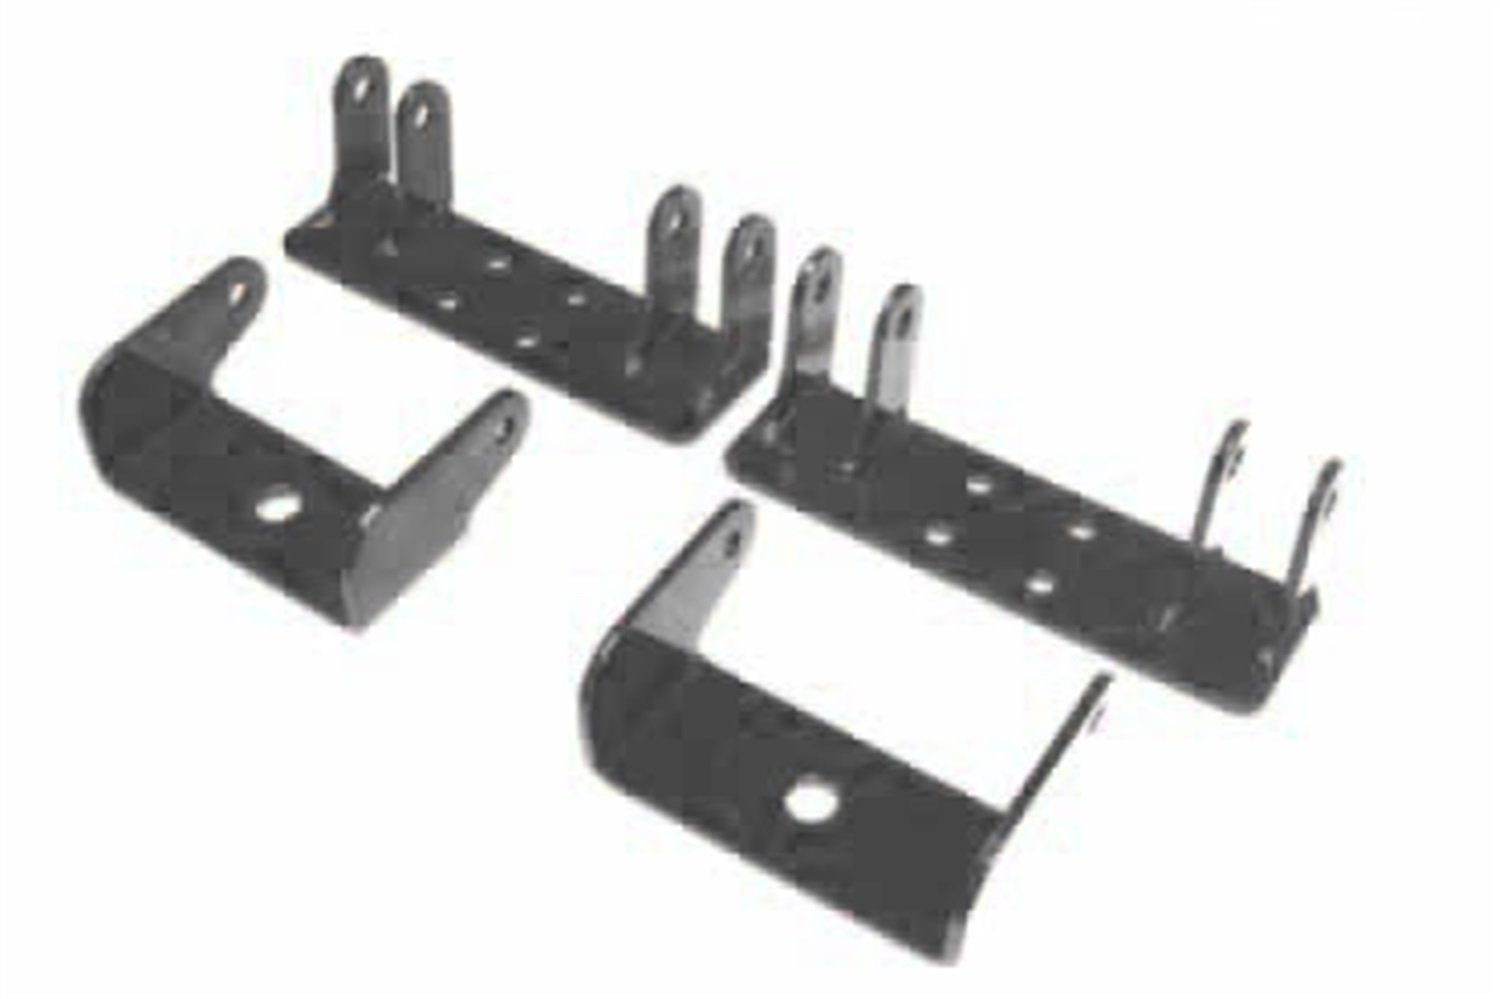 Skyjacker TS450 - Skyjacker Multiple Shock Bracket Kits